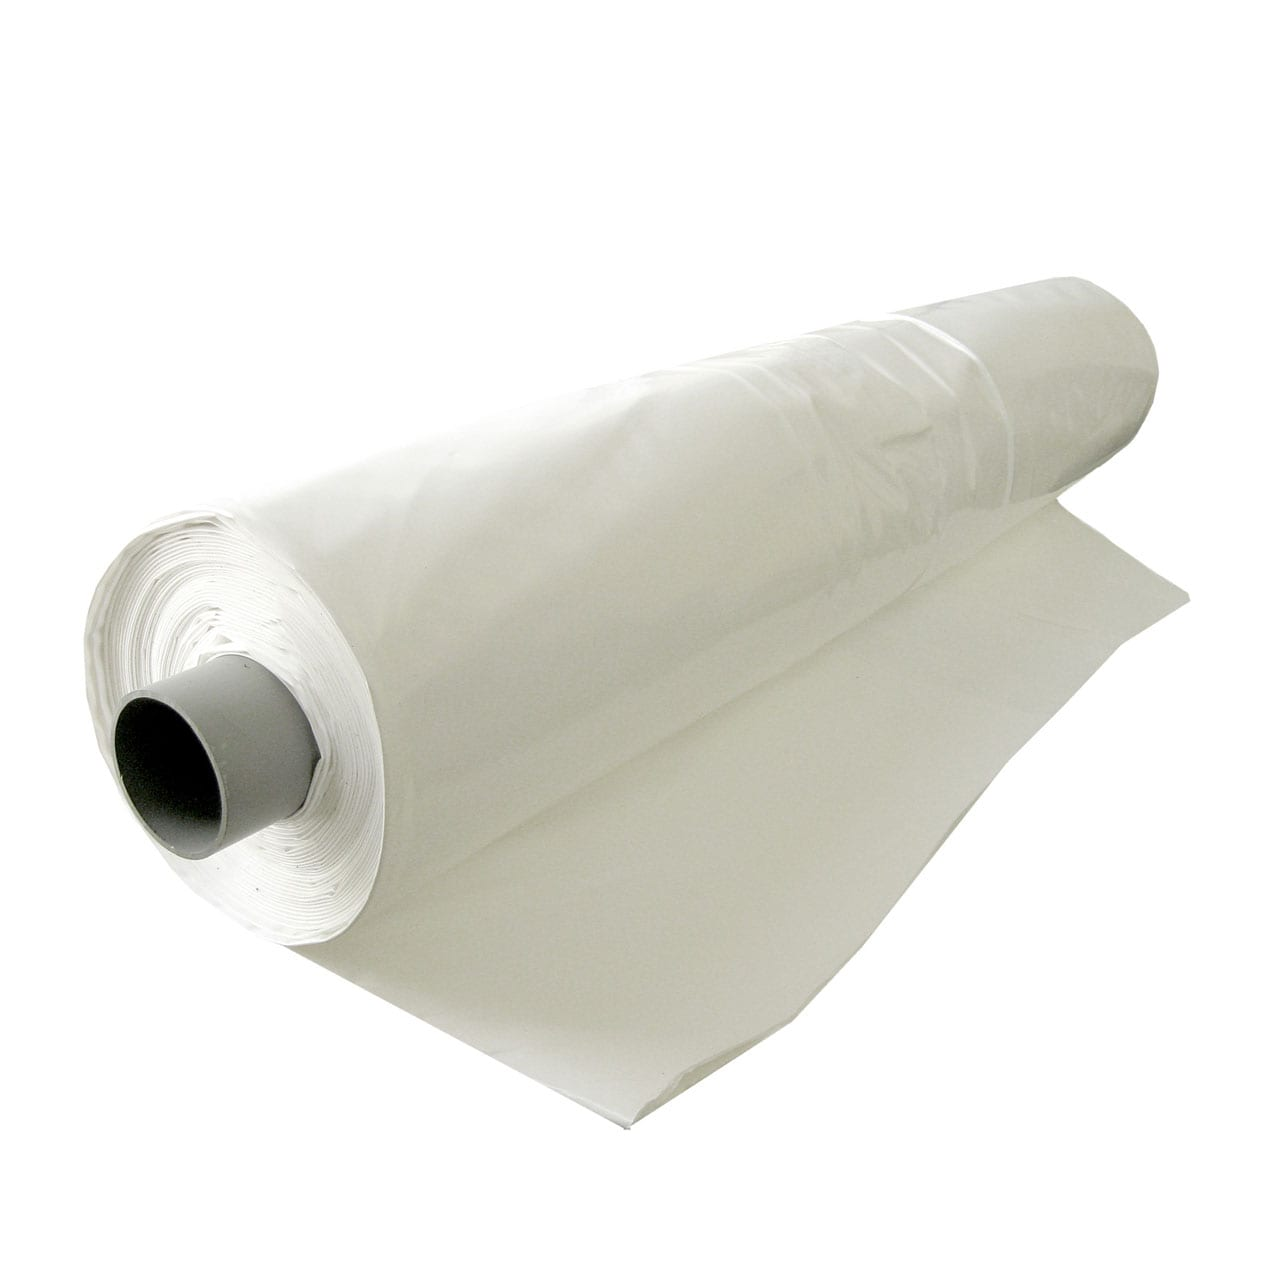 190 micron Flame Retardant Shrink-wrap